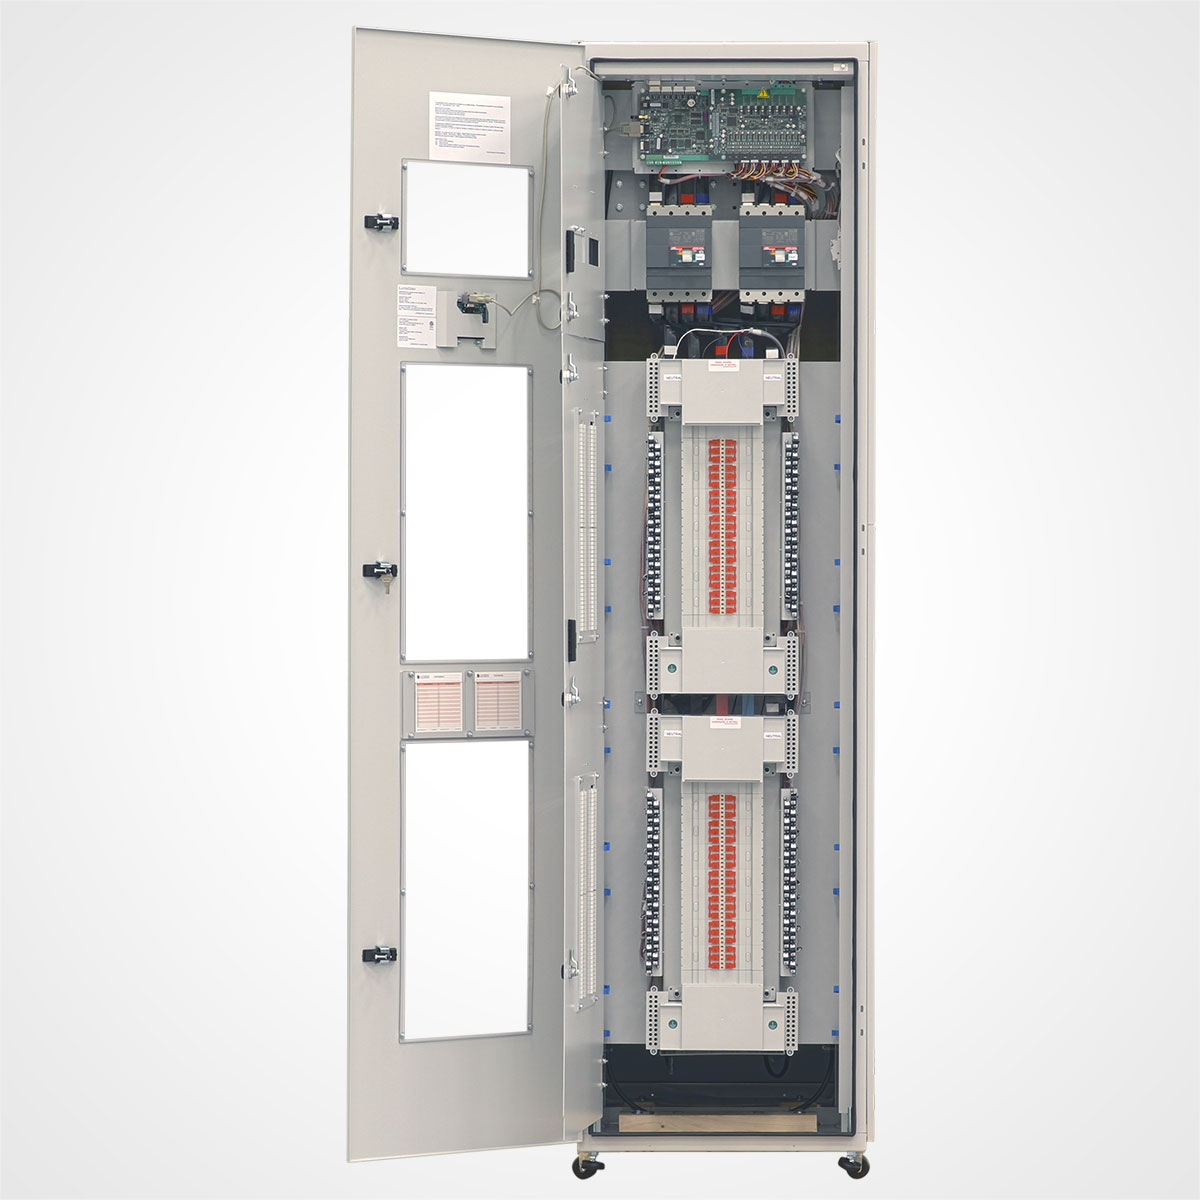 The LayerZero Series 70: eRPP Remote Power Panel with All Doors Open.